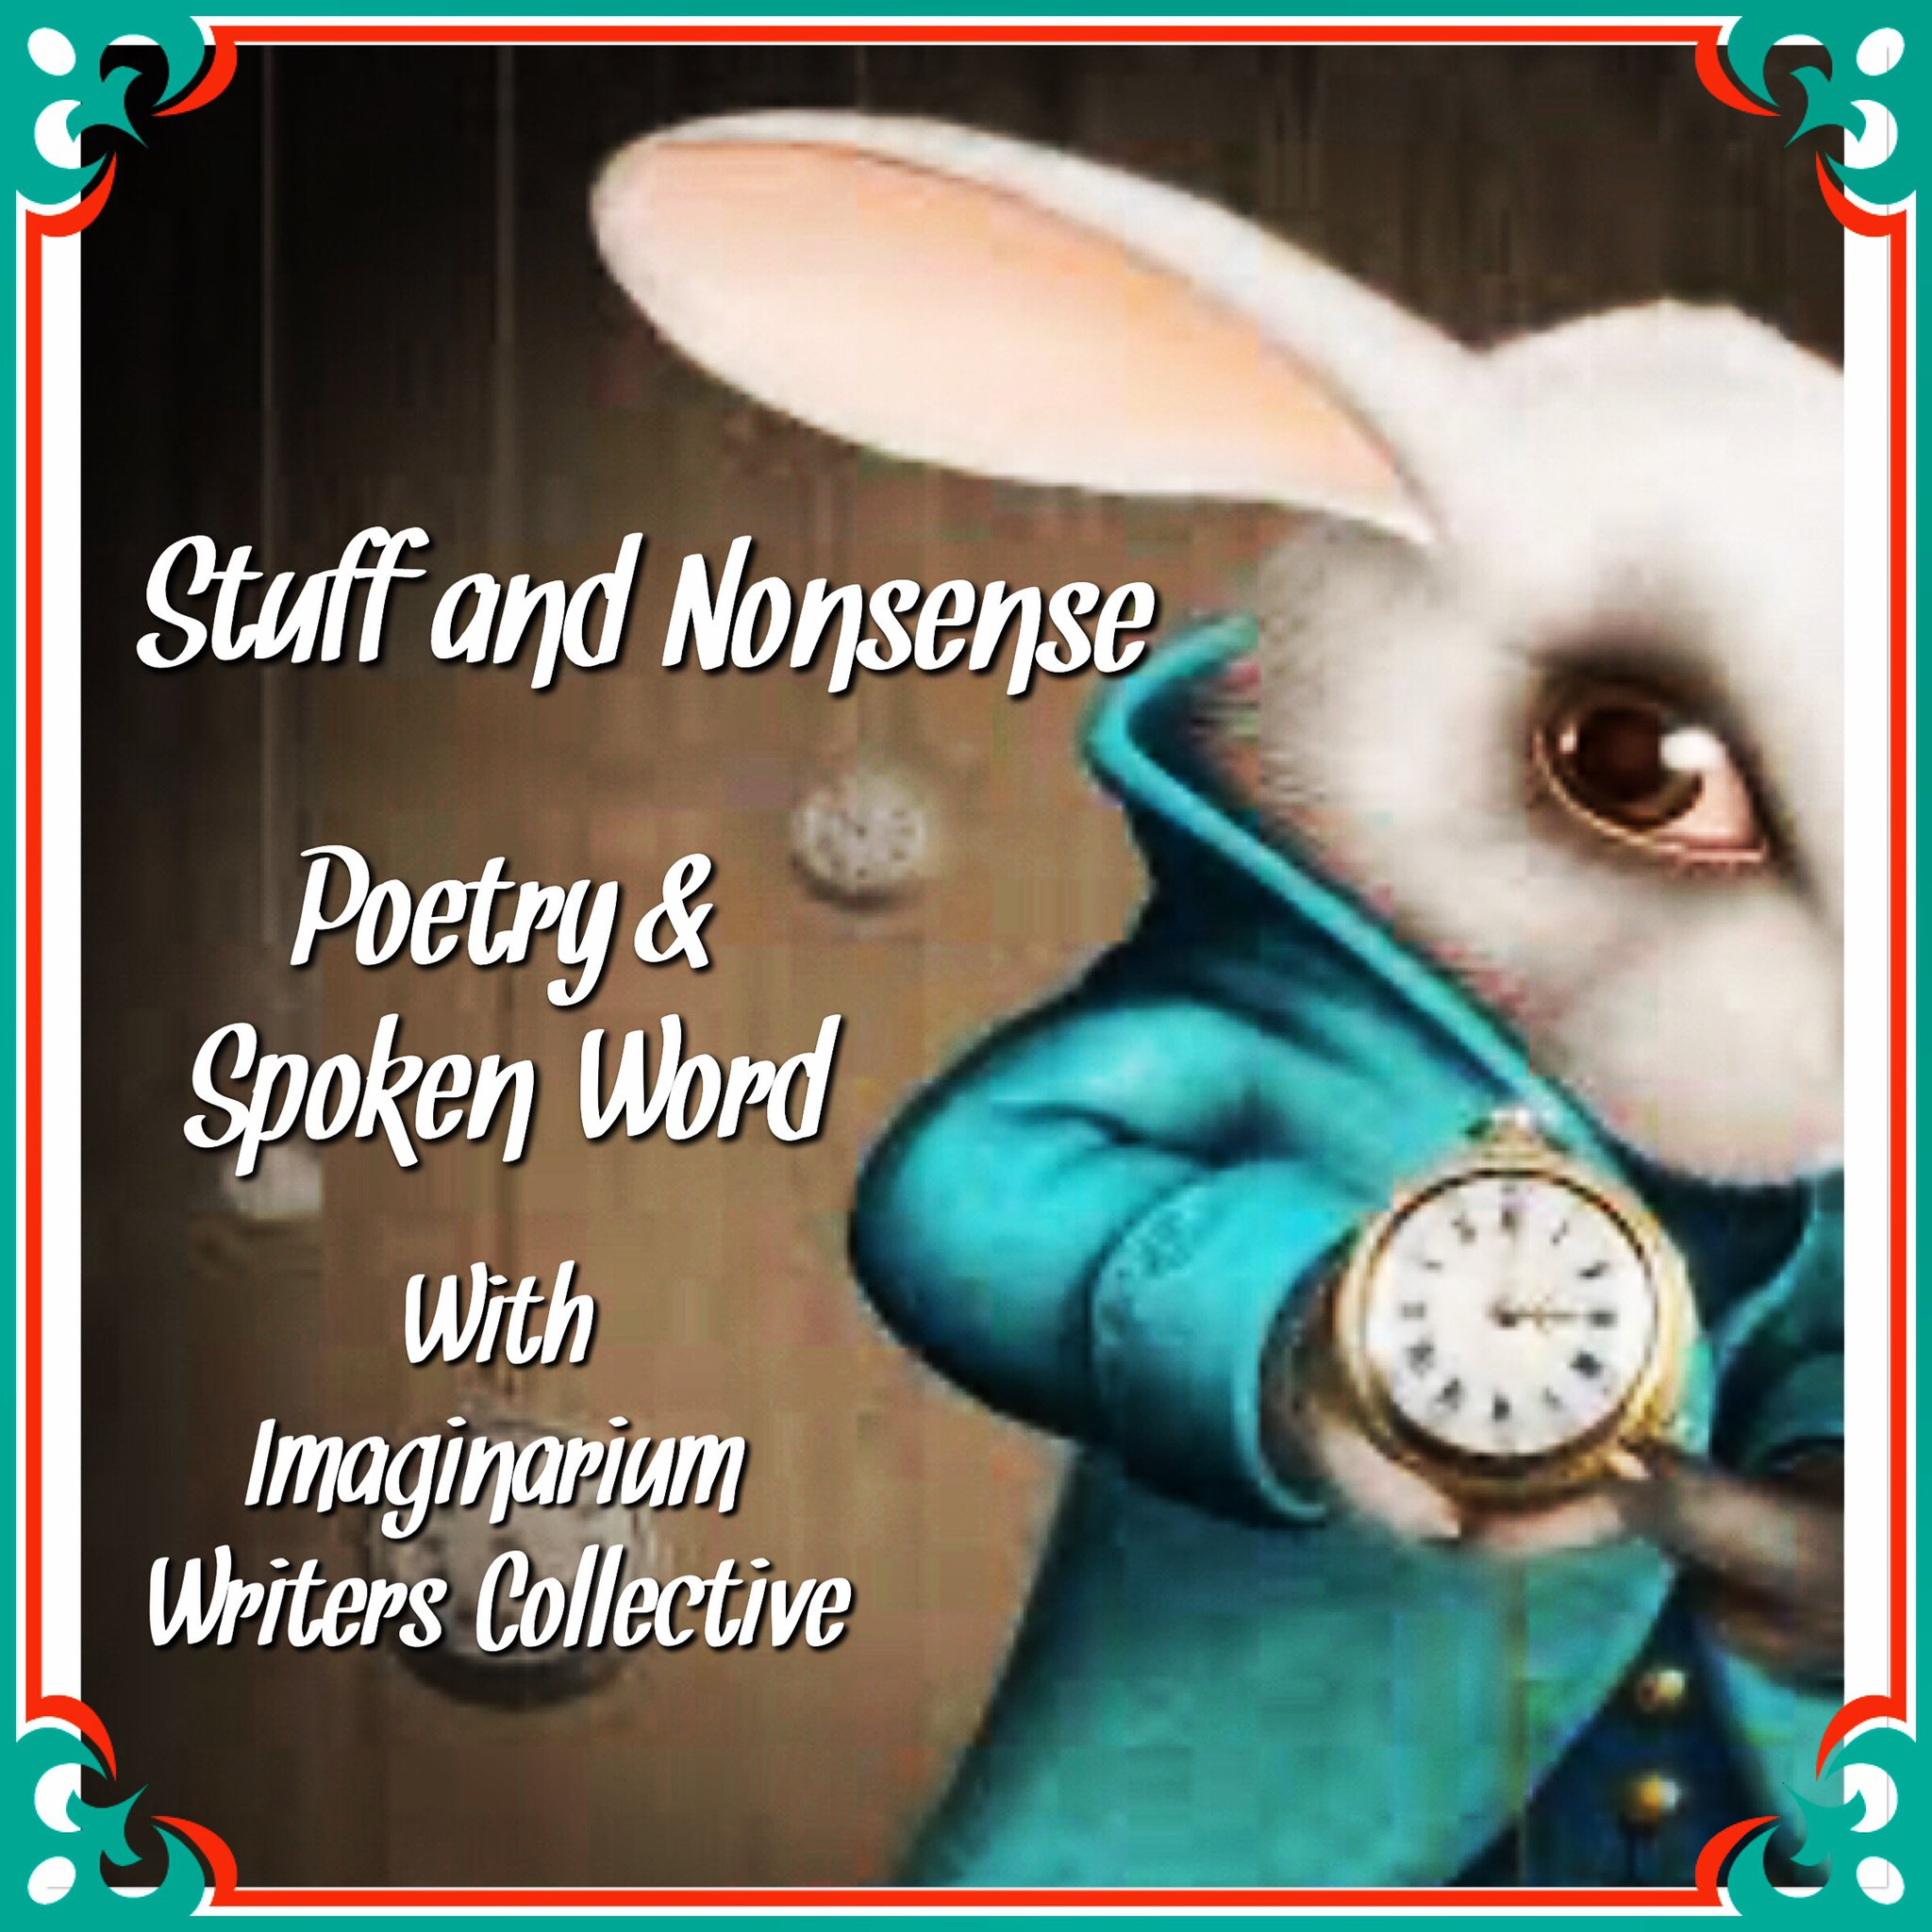 Poetry & Spoken Word - Stuff & Nonsense